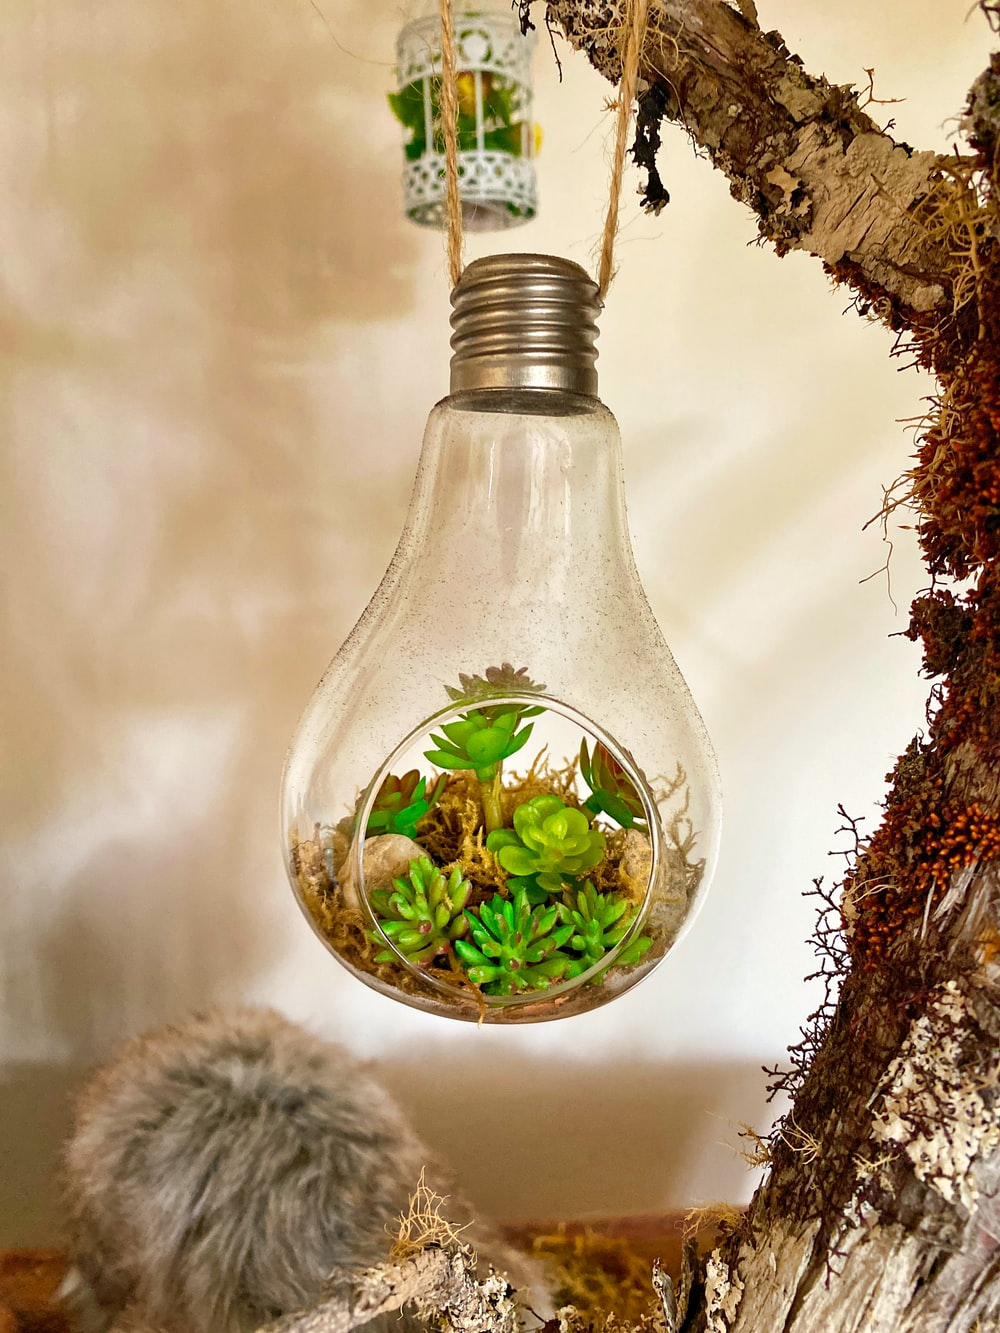 clear glass bottle with green leaves